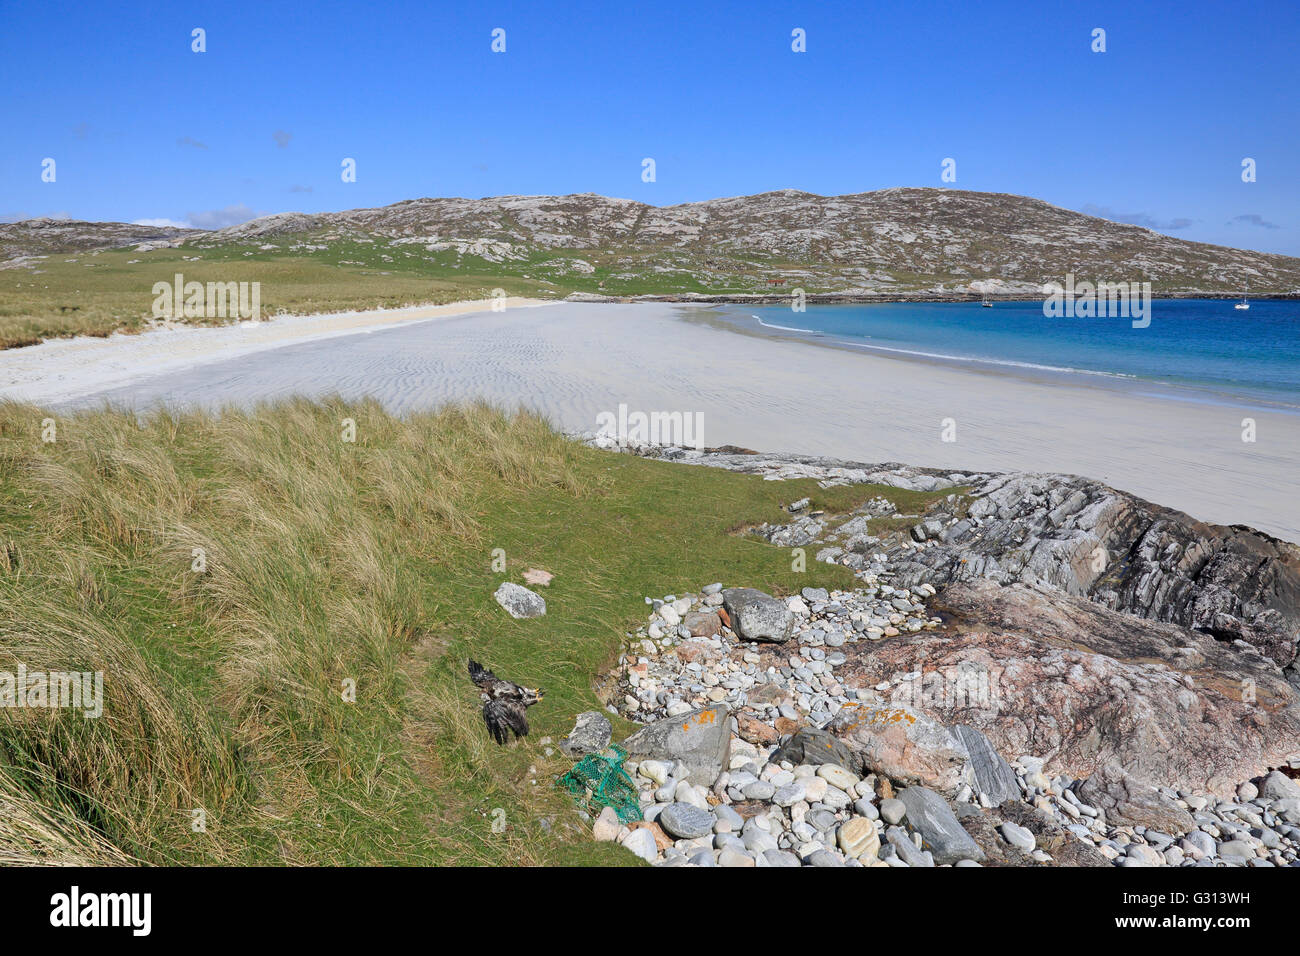 View of white sandy beach on the Island of Taransay in the Outer Hebrides with dead golden eagle in the foreground - Stock Image